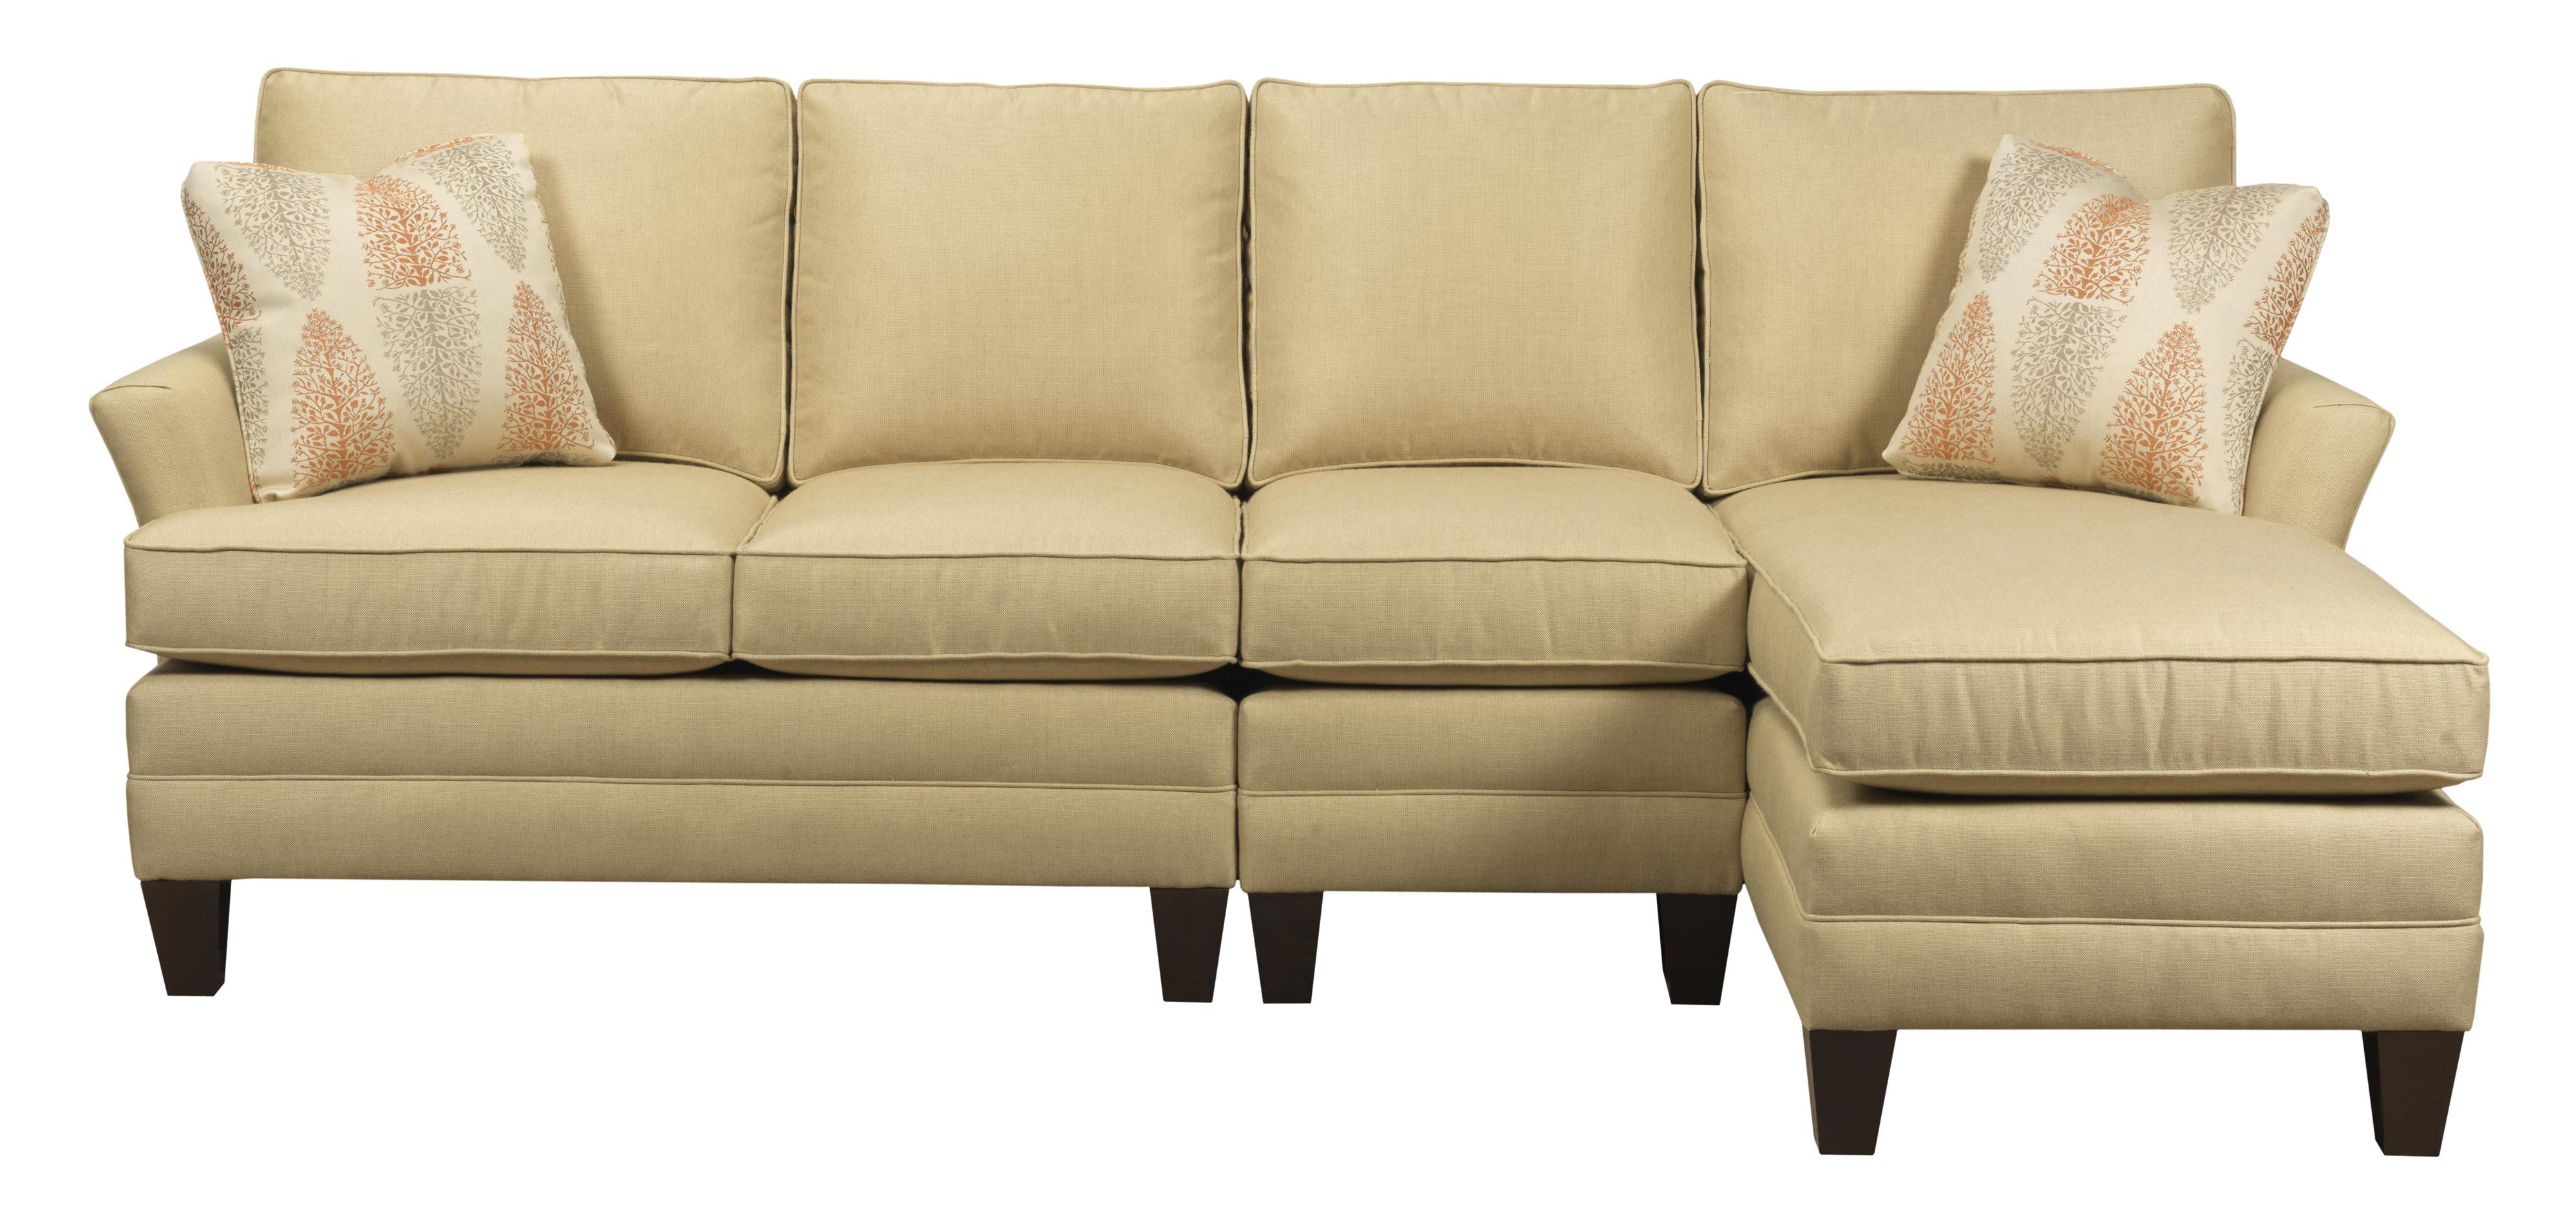 Studio Select Custom 3 Pc Sectional w/ LAF Chaise by Kincaid Furniture at Home Collections Furniture